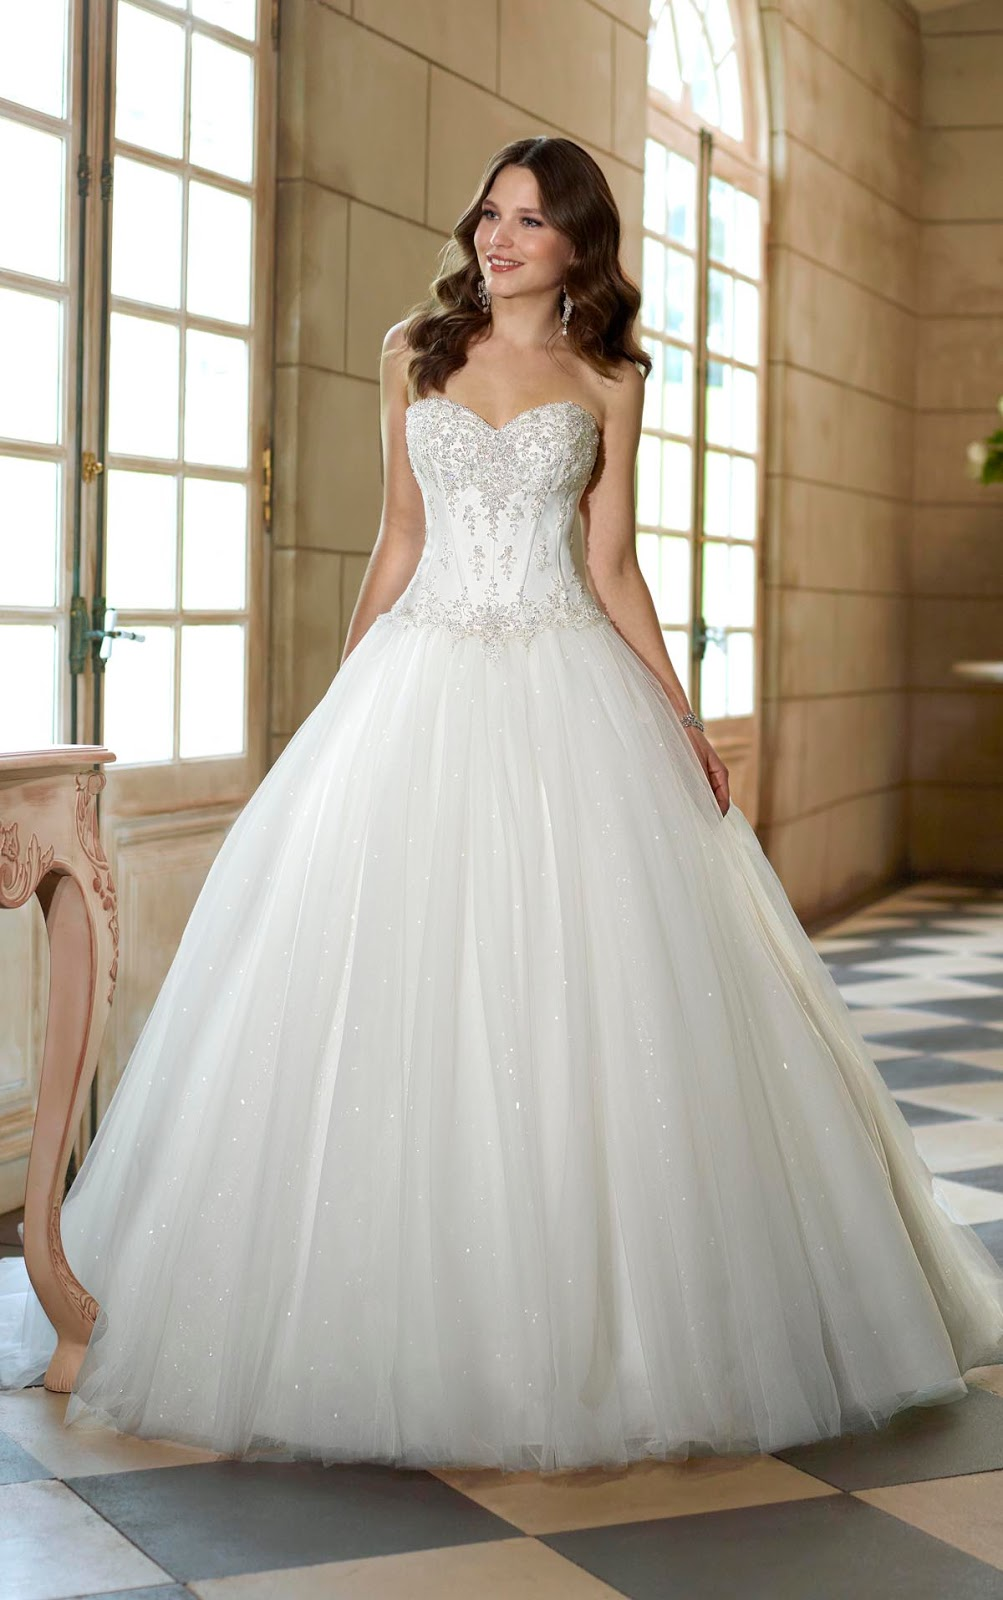 2015 Autumn And Winter White Beautiful Wedding Dress Selection Why